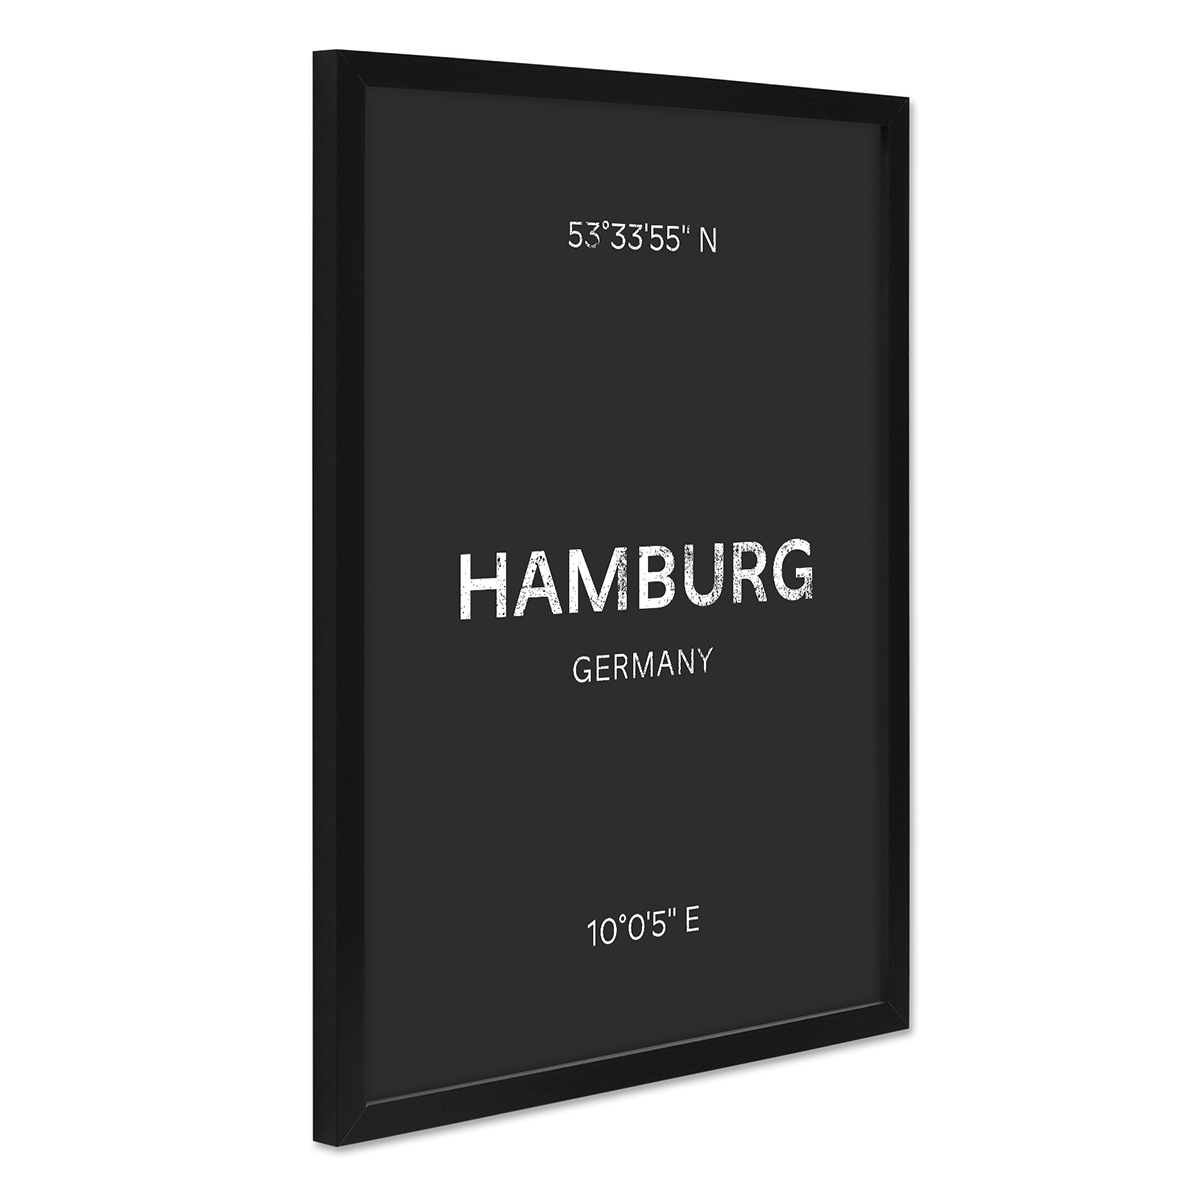 design poster mit bilderrahmen schwarz 39 hamburg 39 30x40 cm schwarz weiss karte typografie modern. Black Bedroom Furniture Sets. Home Design Ideas